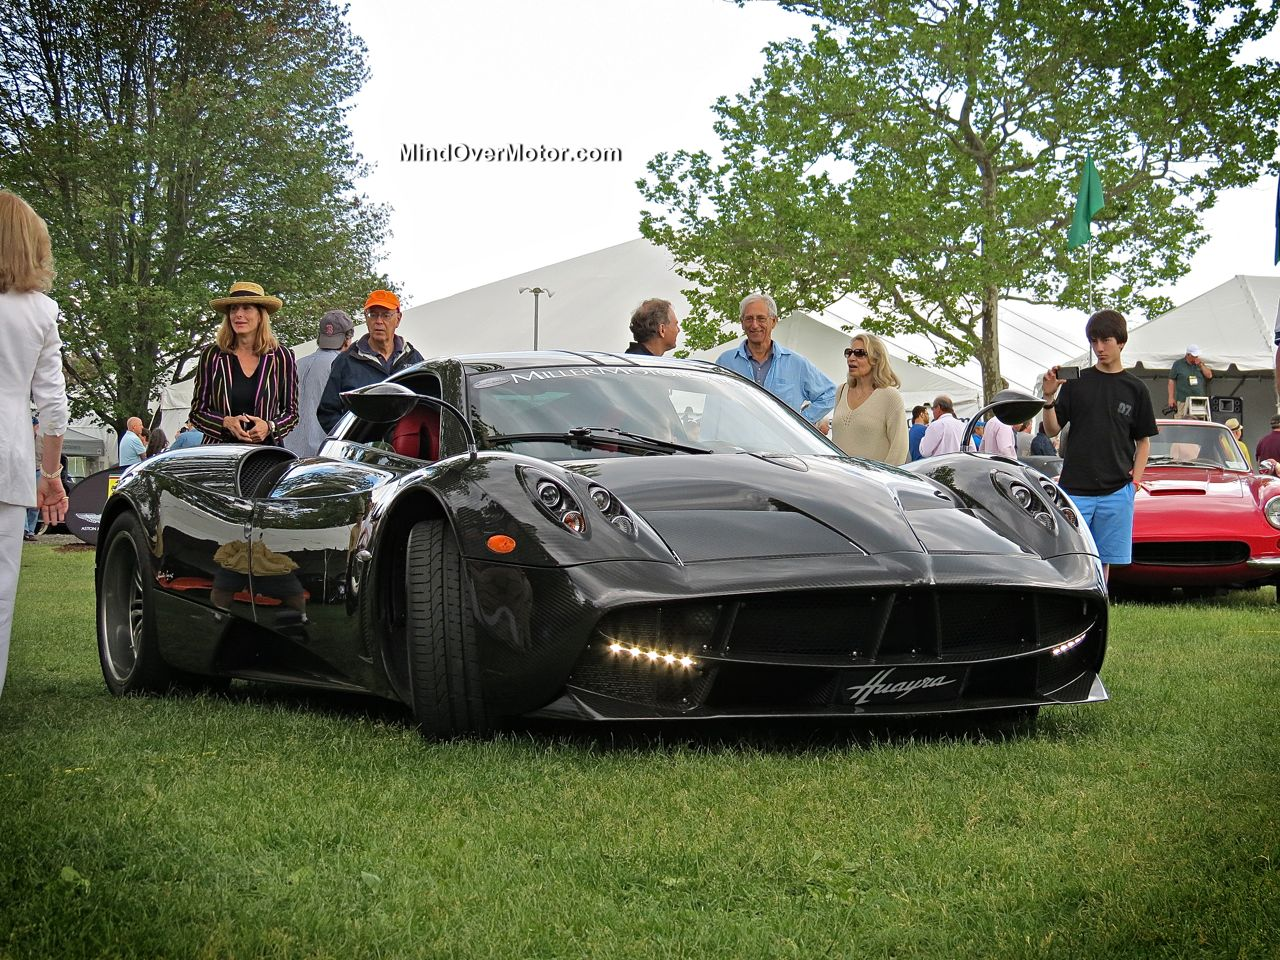 Pagani Huayra at the Greenwich Concours d'Elegance